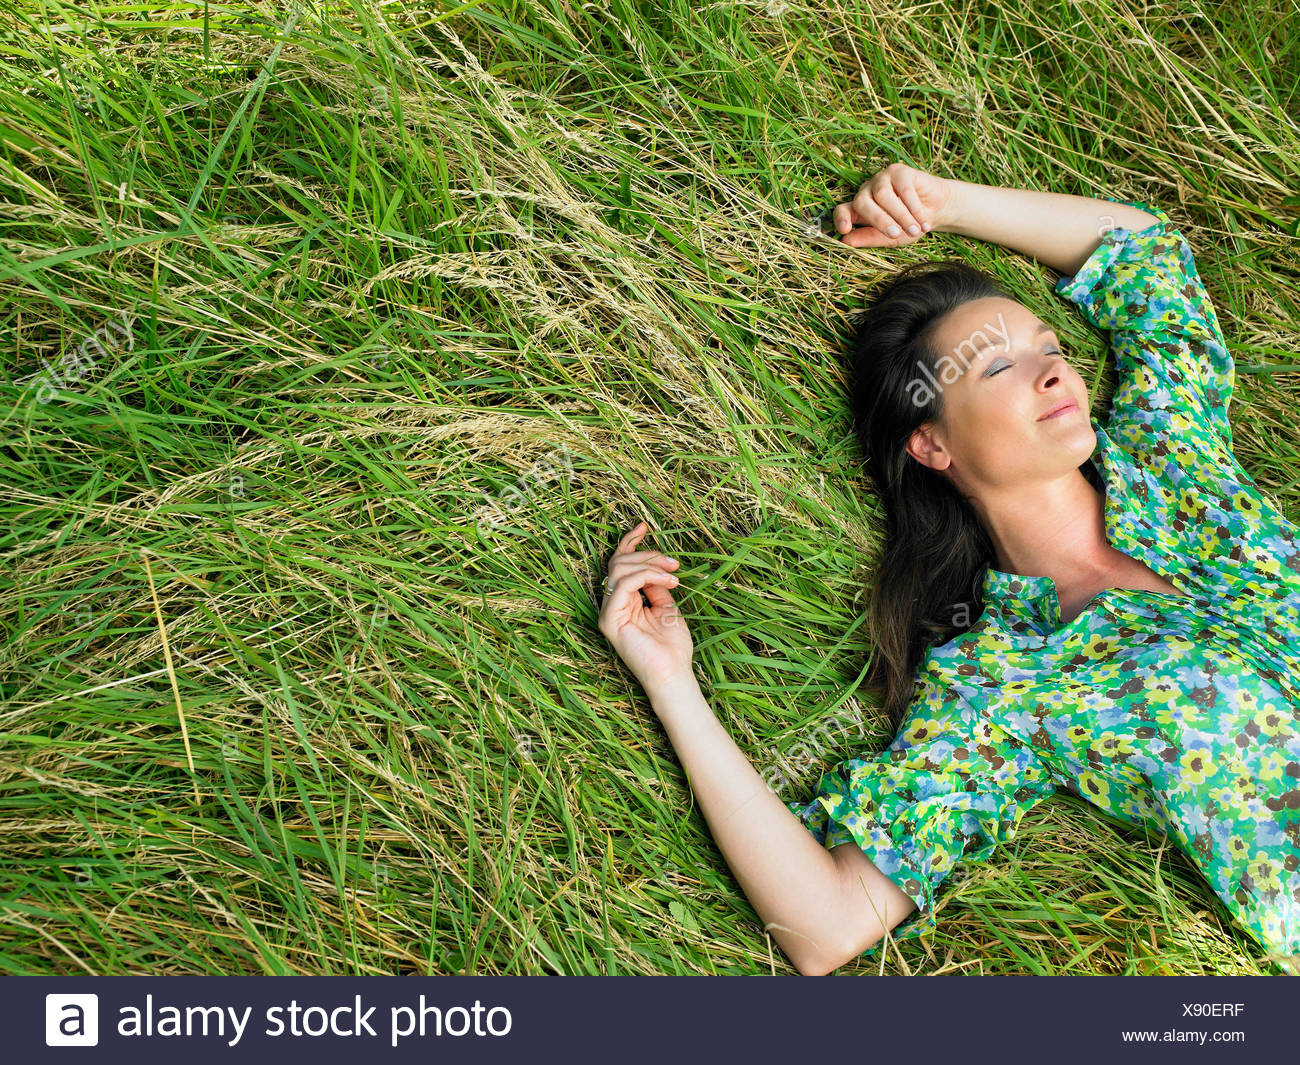 Woman laying down in a field Stock Photo - Alamy